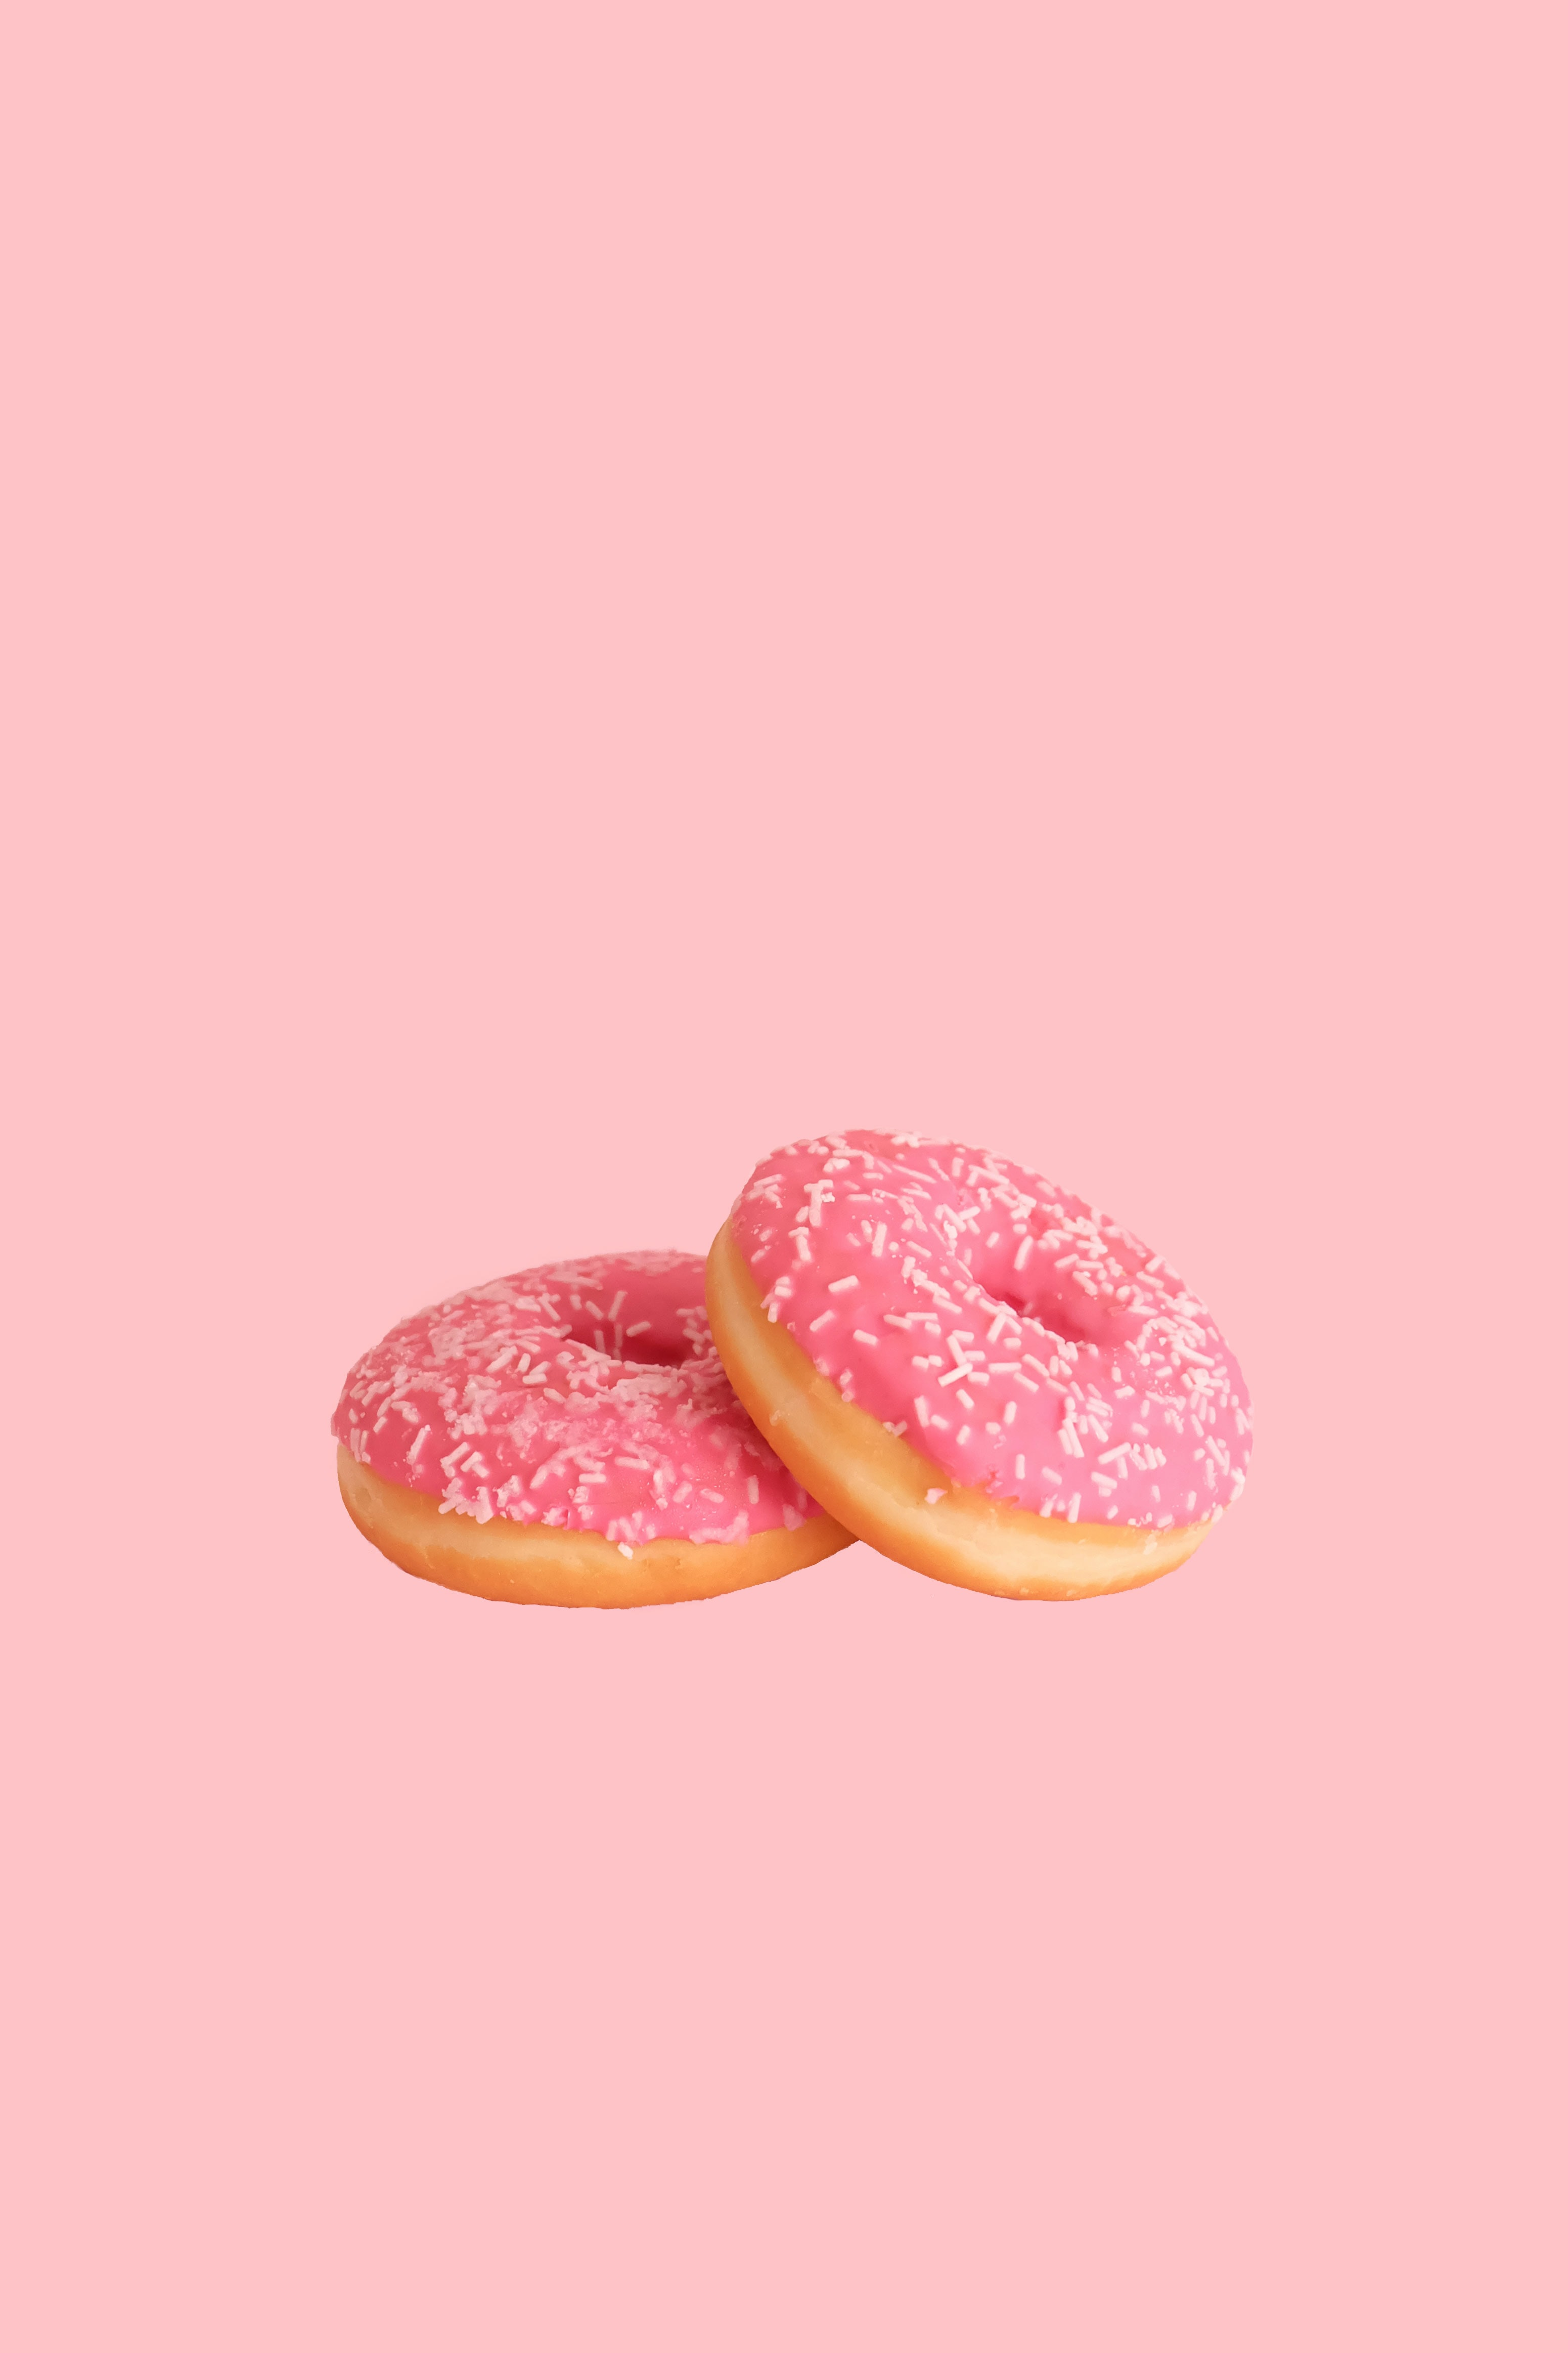 two strawberry doughnuts with sprinkles